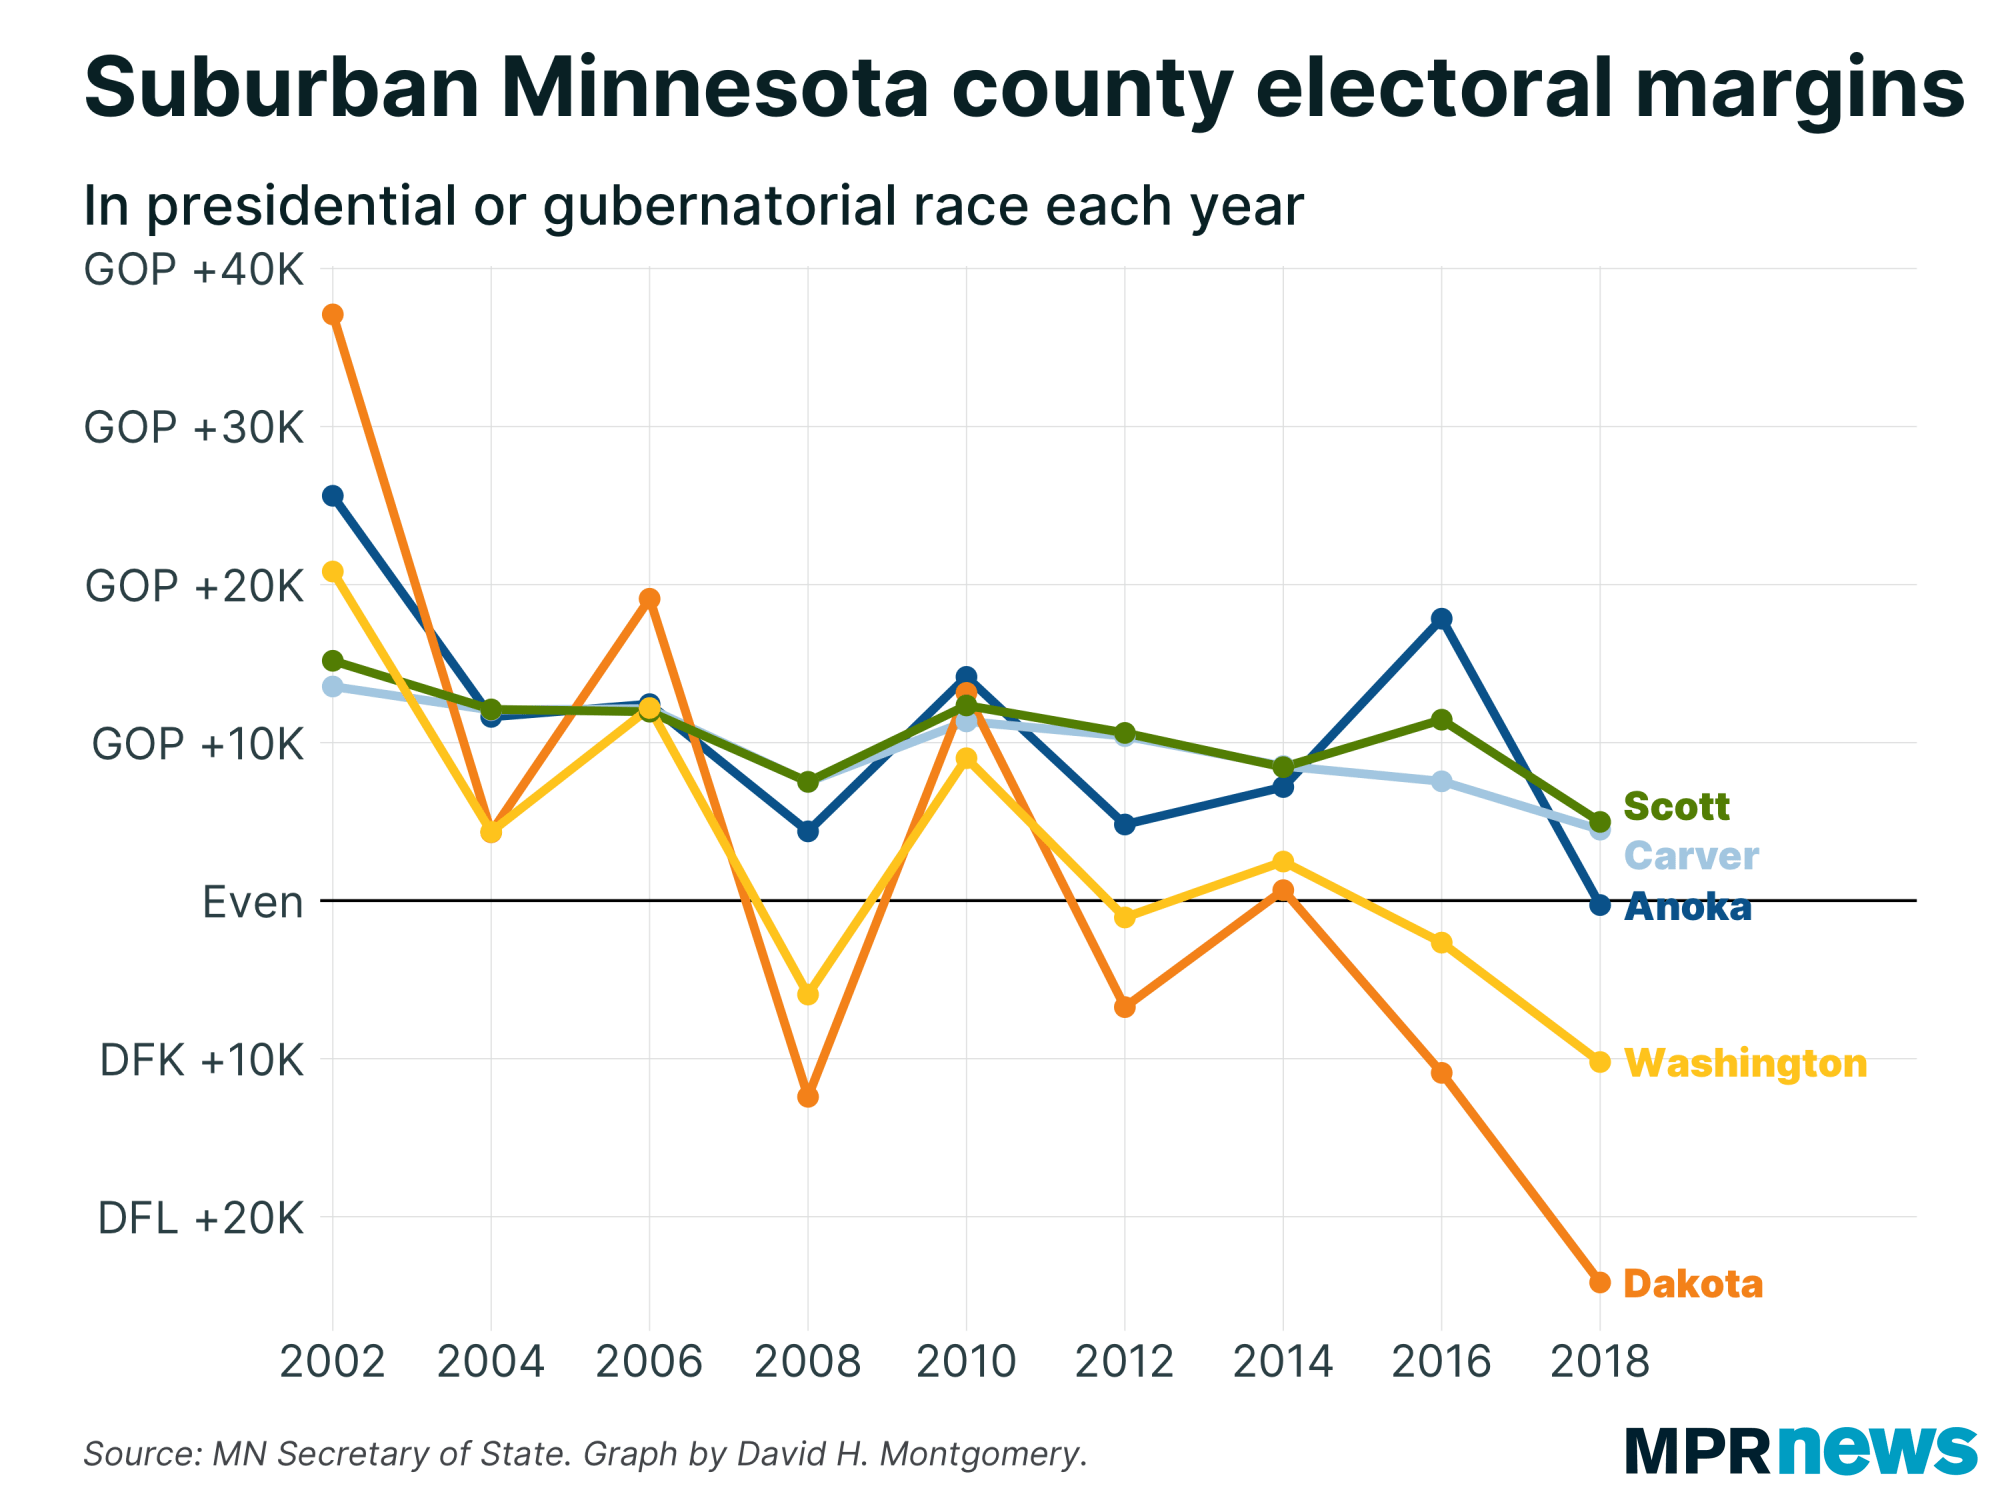 Combined victory margins 2002-2018 in Twin Cities suburban counties